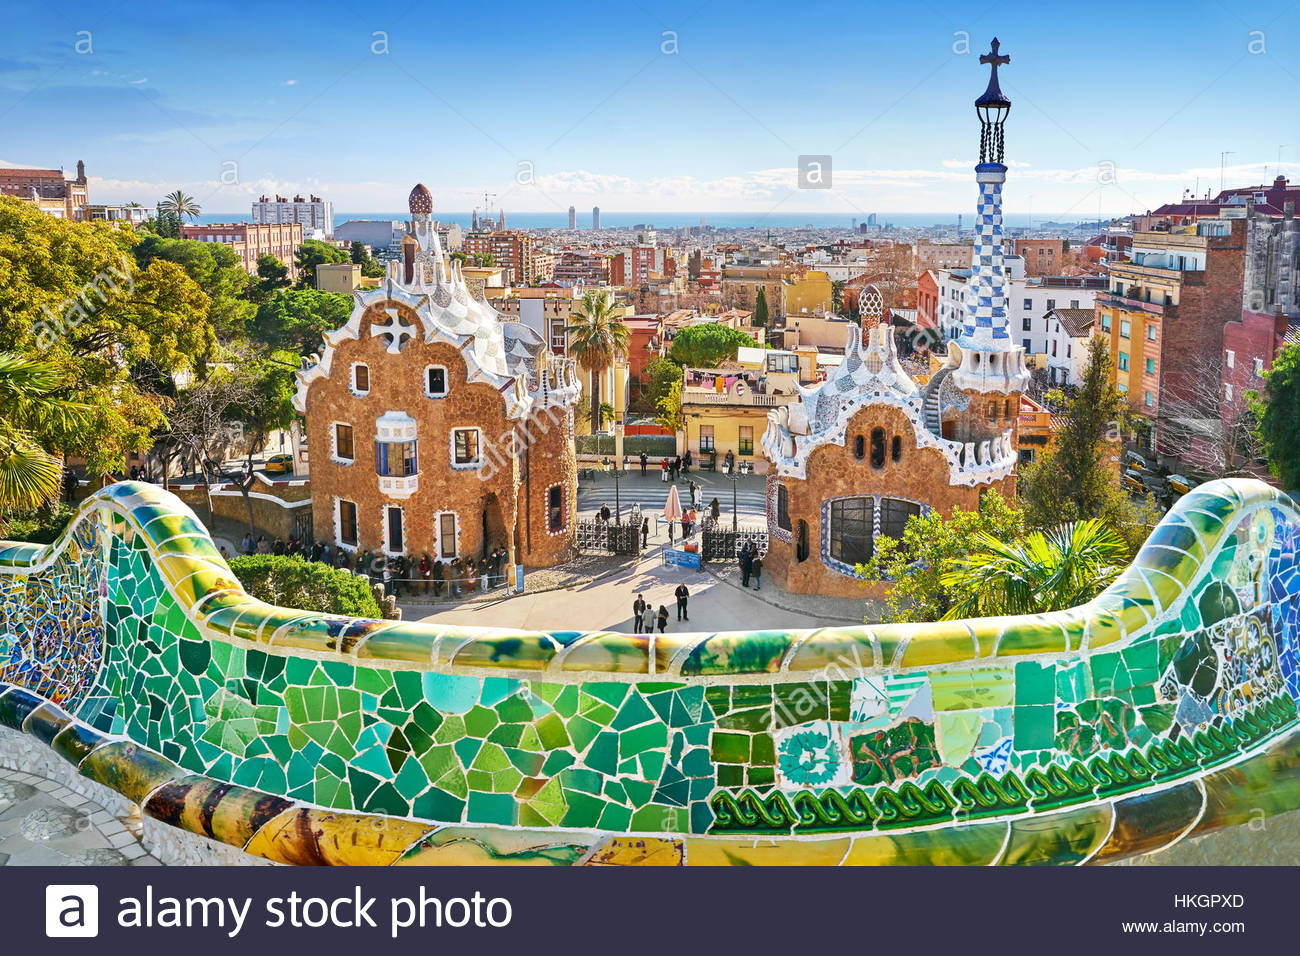 Barcelona - Park Guell by Antoni Gaudi, Catalonia, Spain - Stock Image